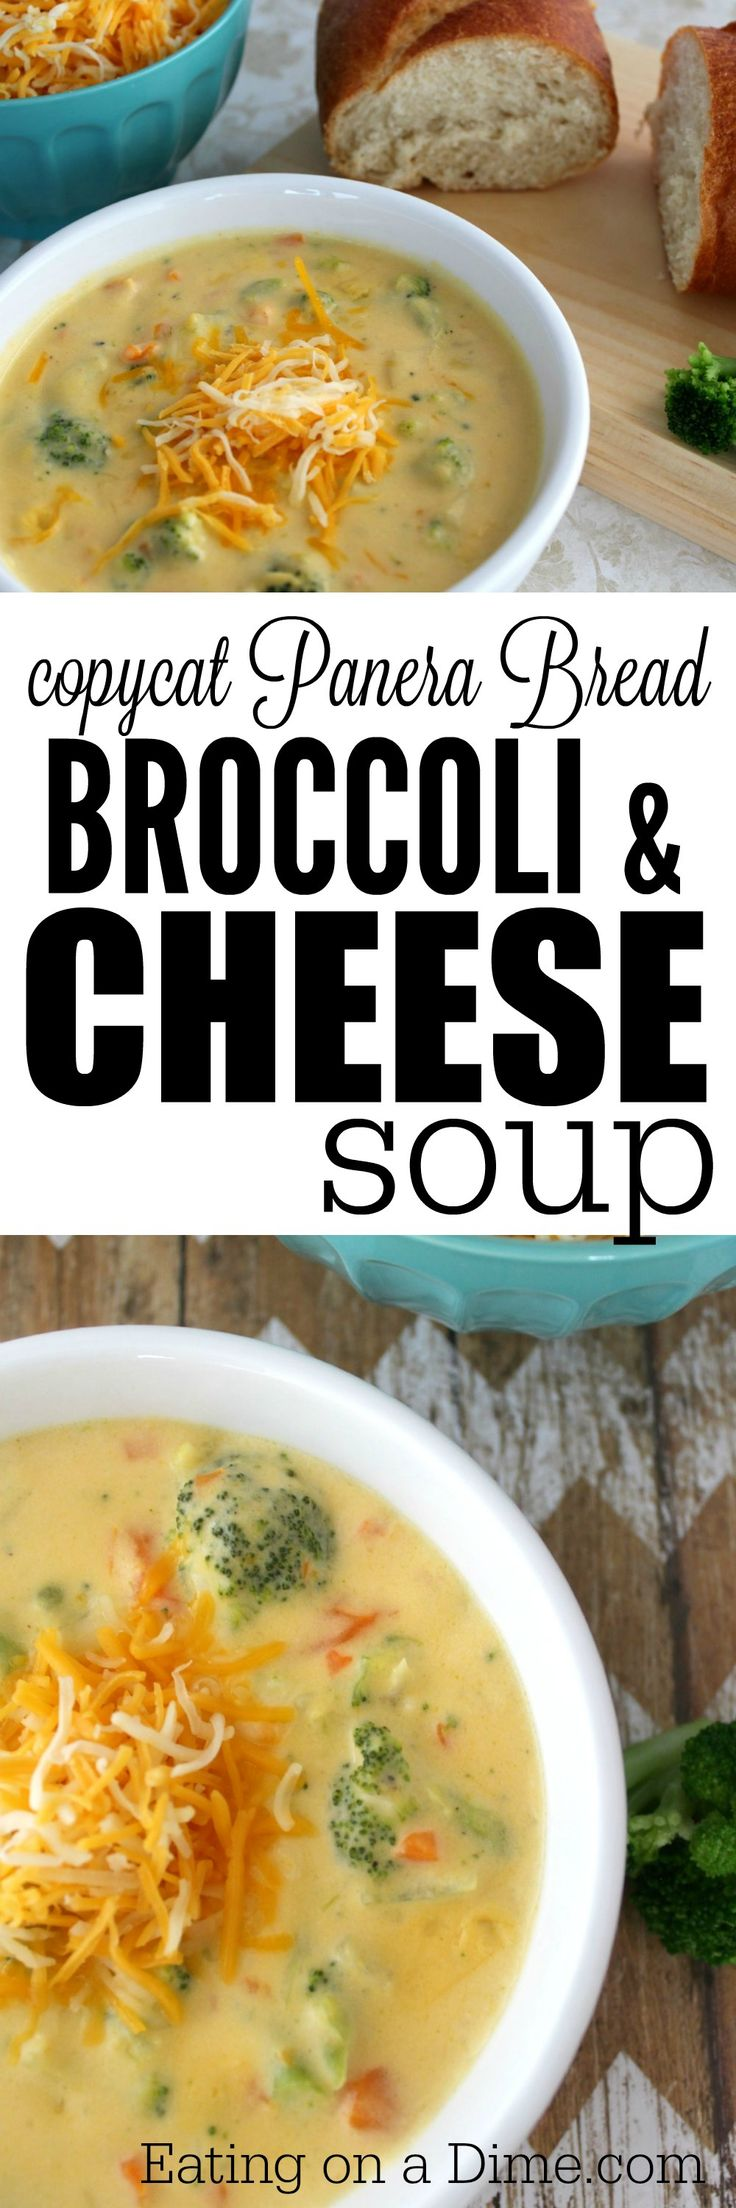 Easy CopyCat Panera recipe - Broccoli and Cheese Soup.  I am happy to report that I have a wonderful Panera Bread copycat recipe Broccoli Cheese Soup. Just like my Copycat Chicken noodle soup I think you are going to love this easy soup recipe.